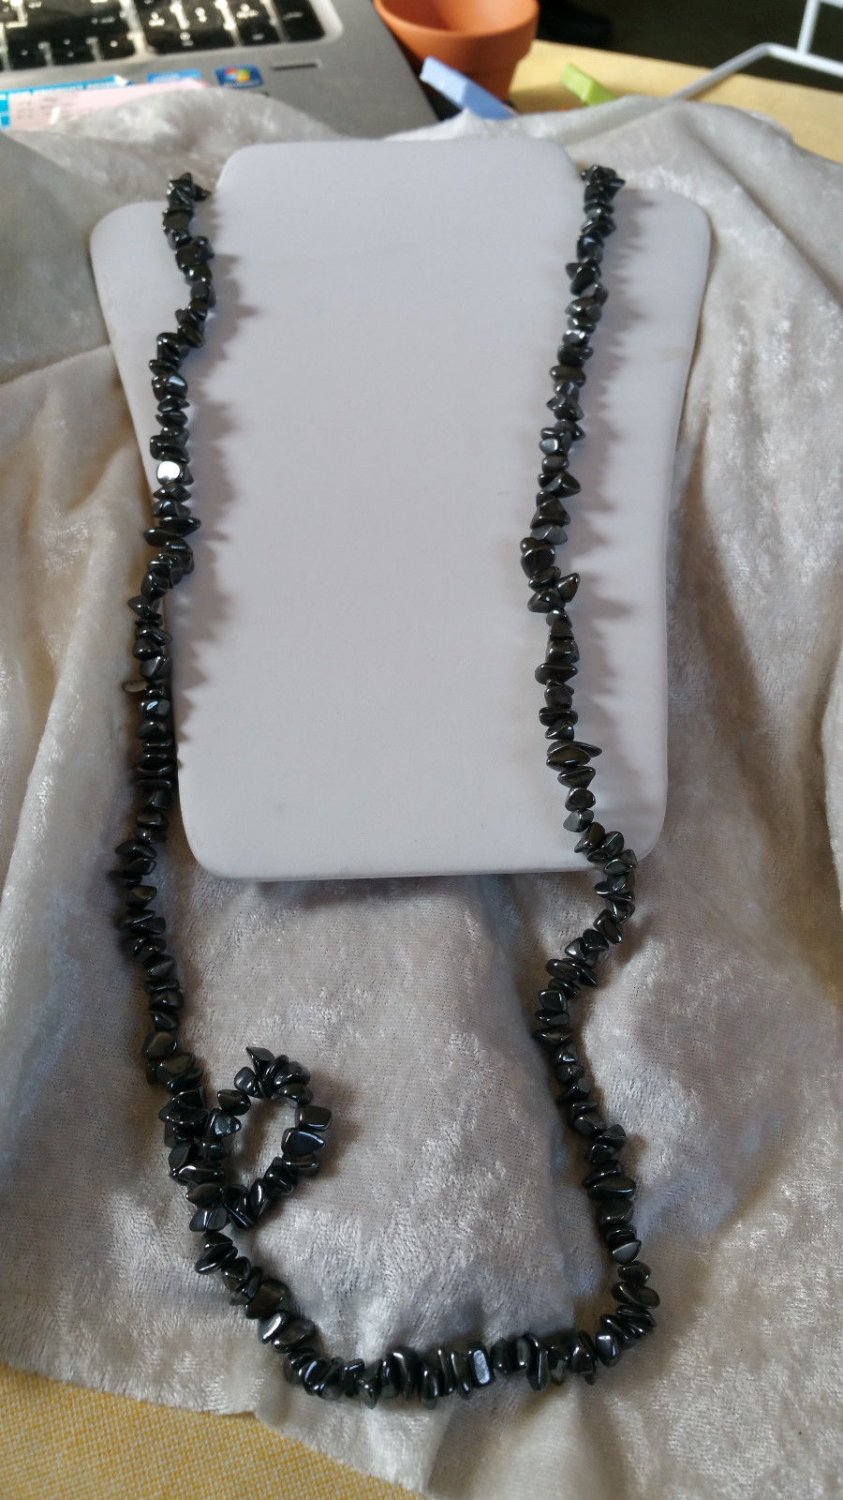 Vintage Hematite beaded necklace string black heavy long healing stone Chakras